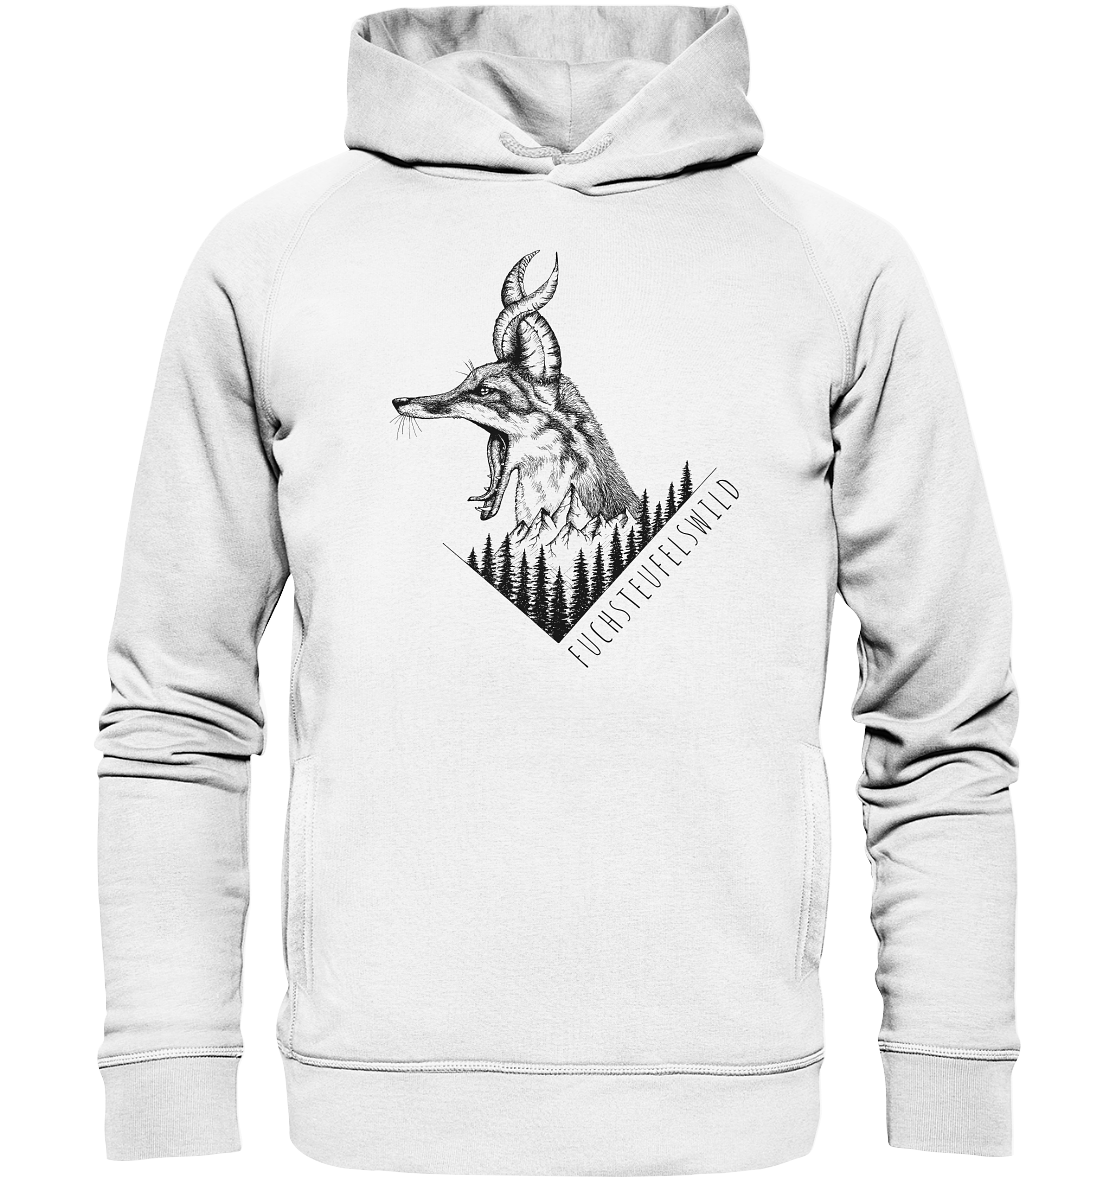 front-organic-fashion-hoodie-f8f8f8-1116x-4.png